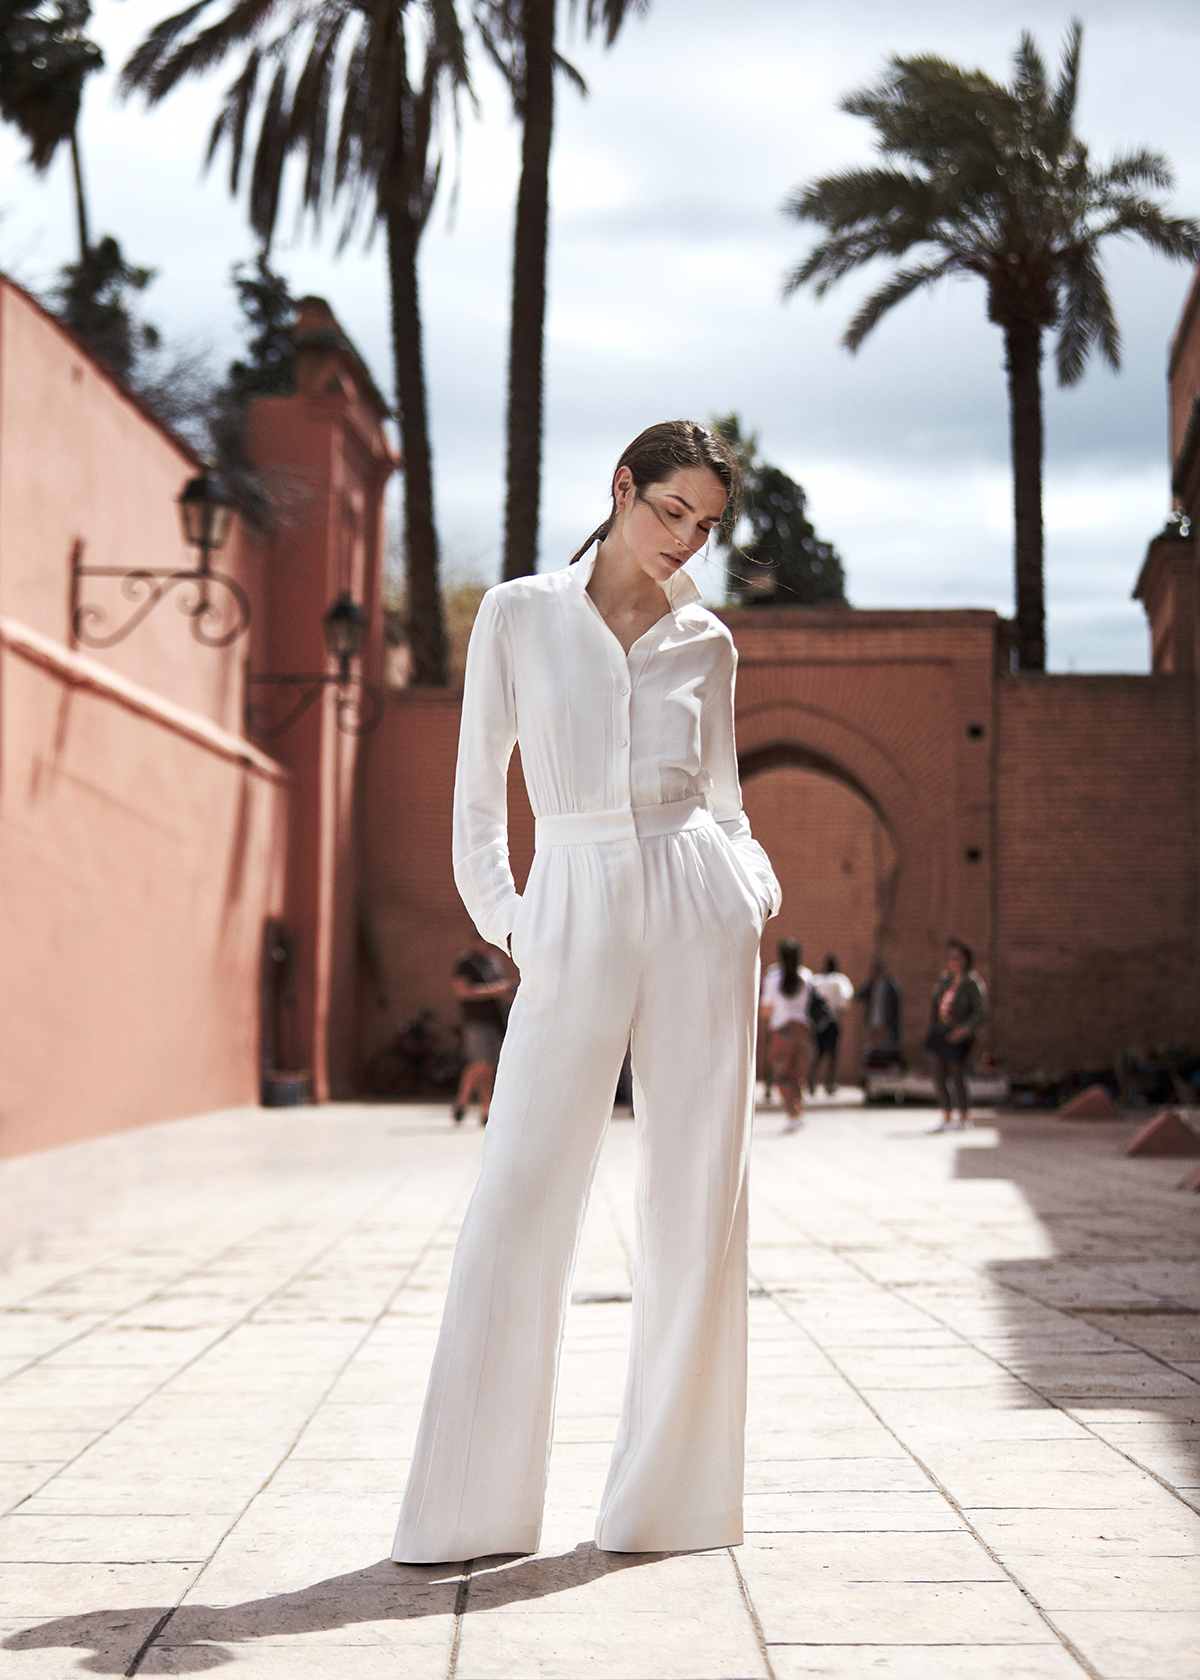 d5b86248c07 reiss wedding guest outfits - Easy Luxe By Reiss – This Summer s Wardrobe  Collection For Wedding